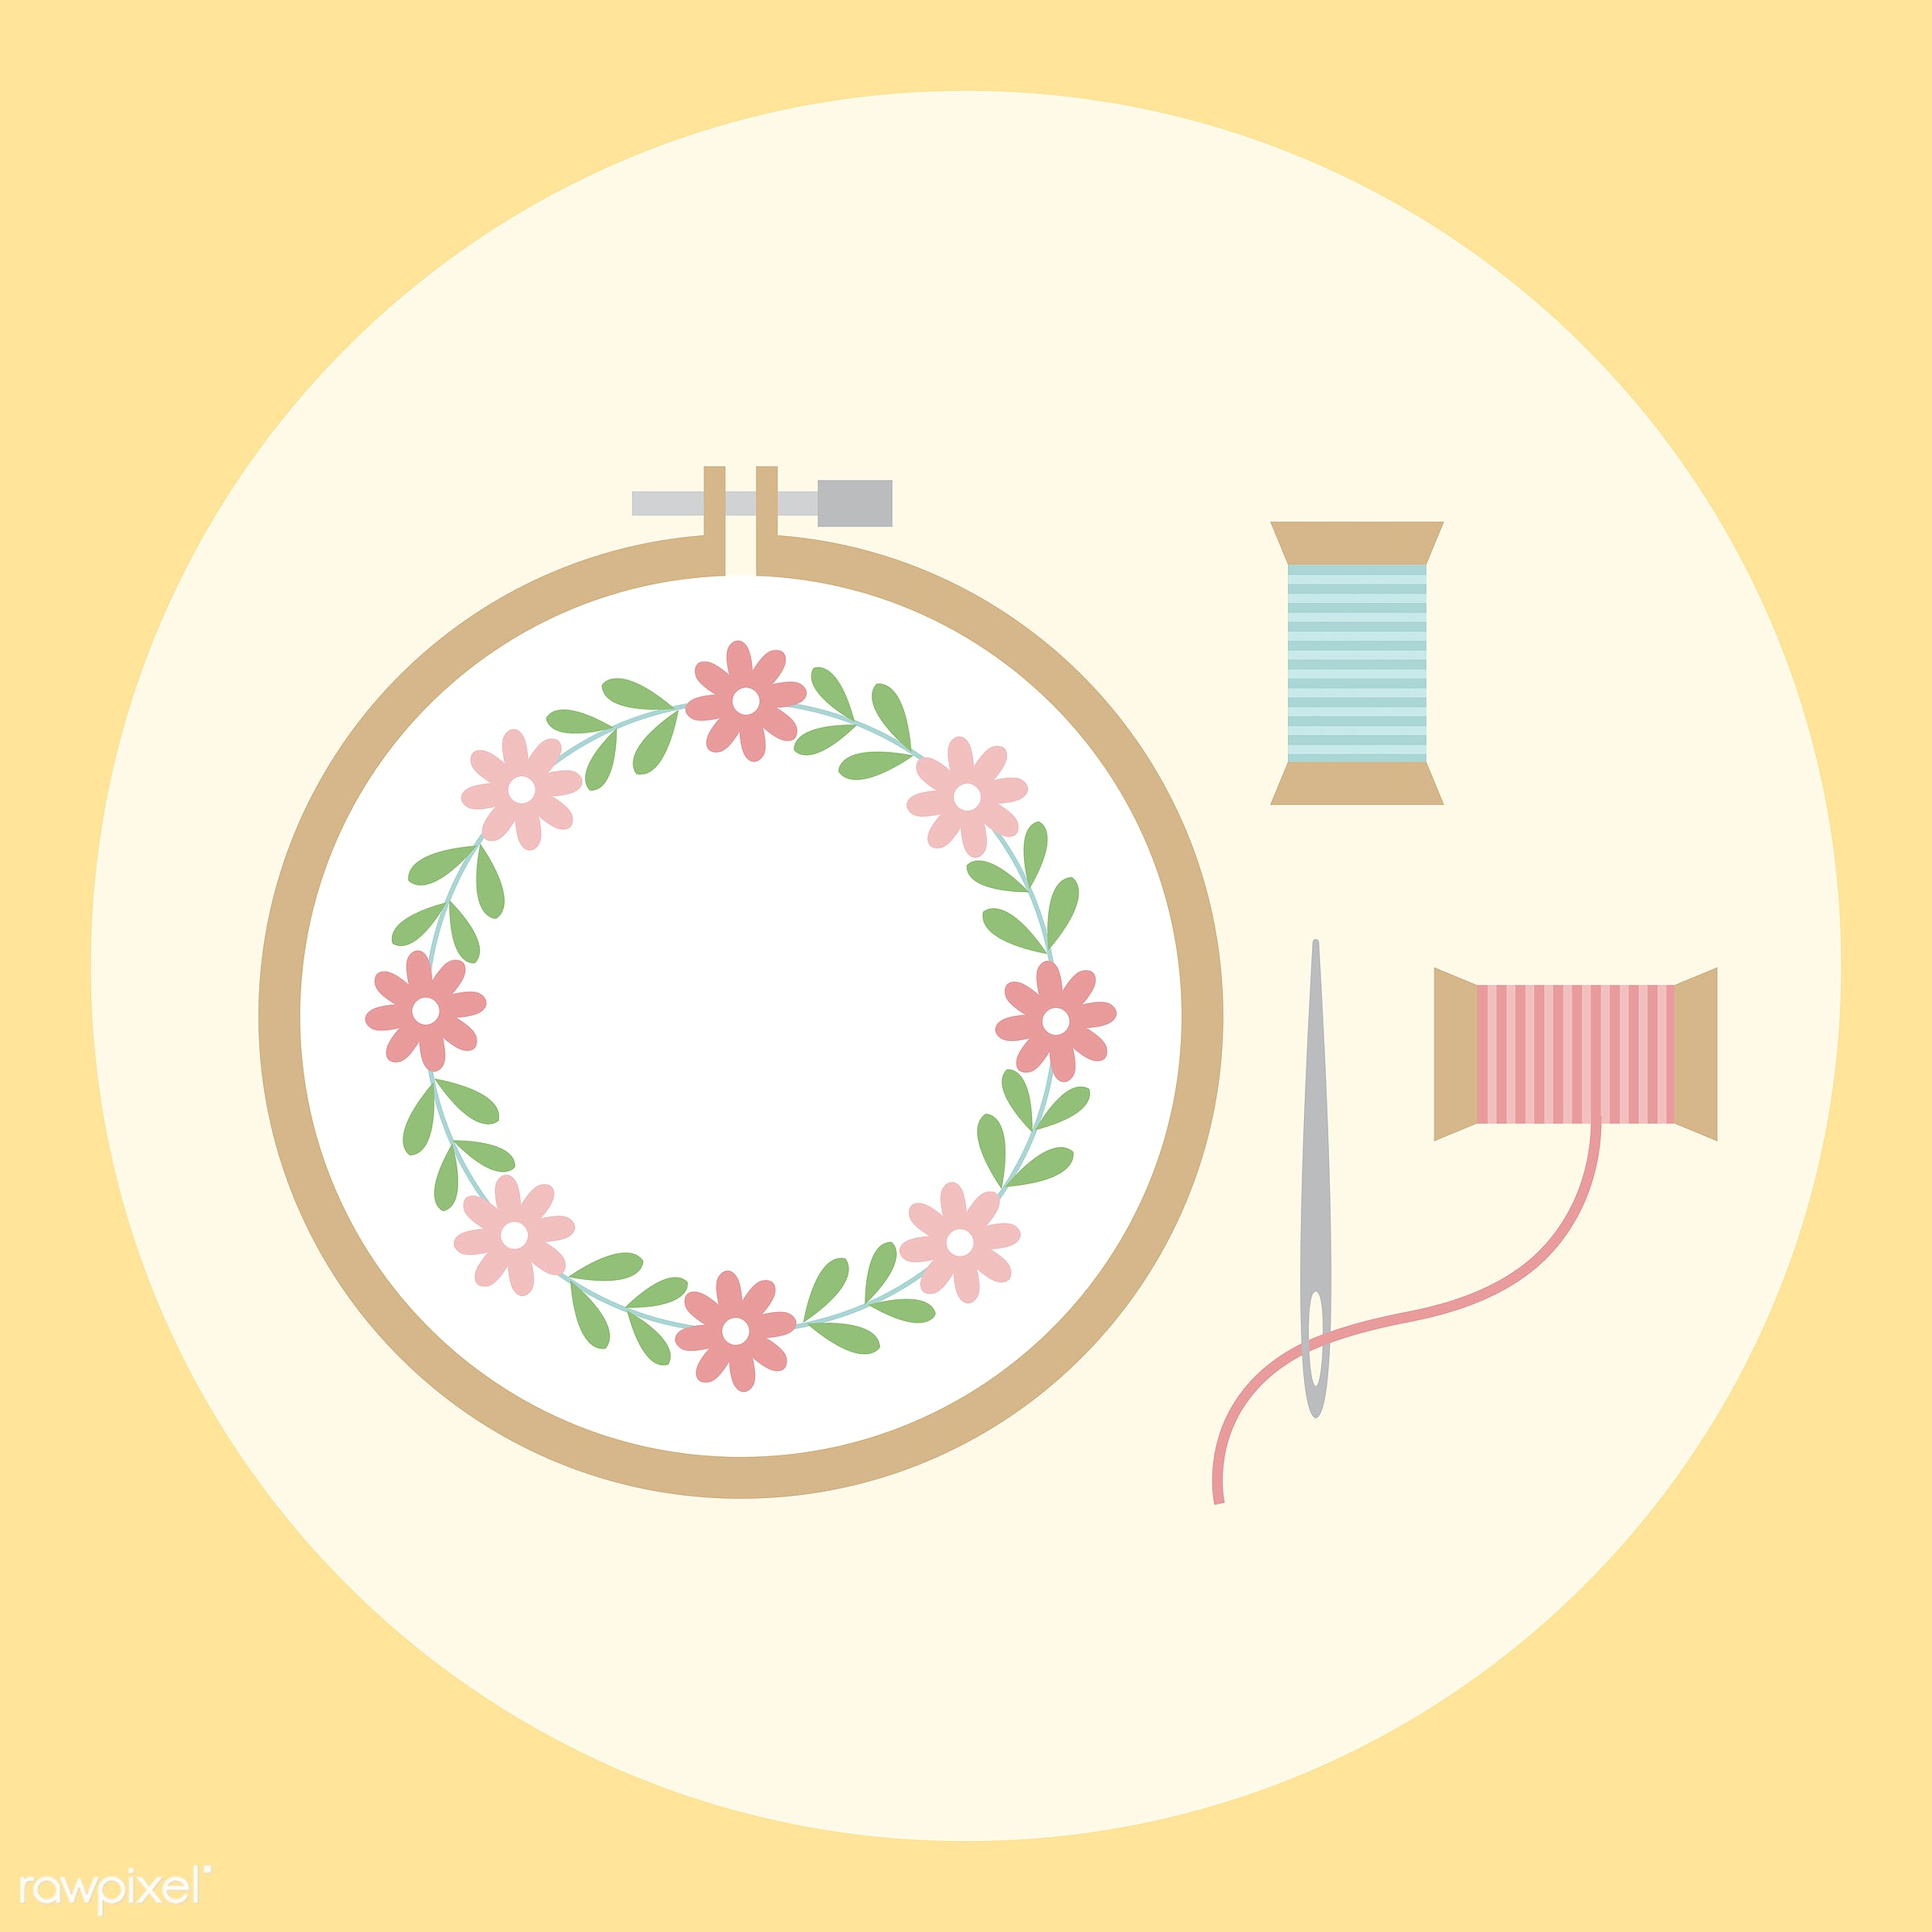 Collection of technology vectors - vector, illustration, graphic, cute, sweet, girly, pastel, sewing, stitching, embroidery